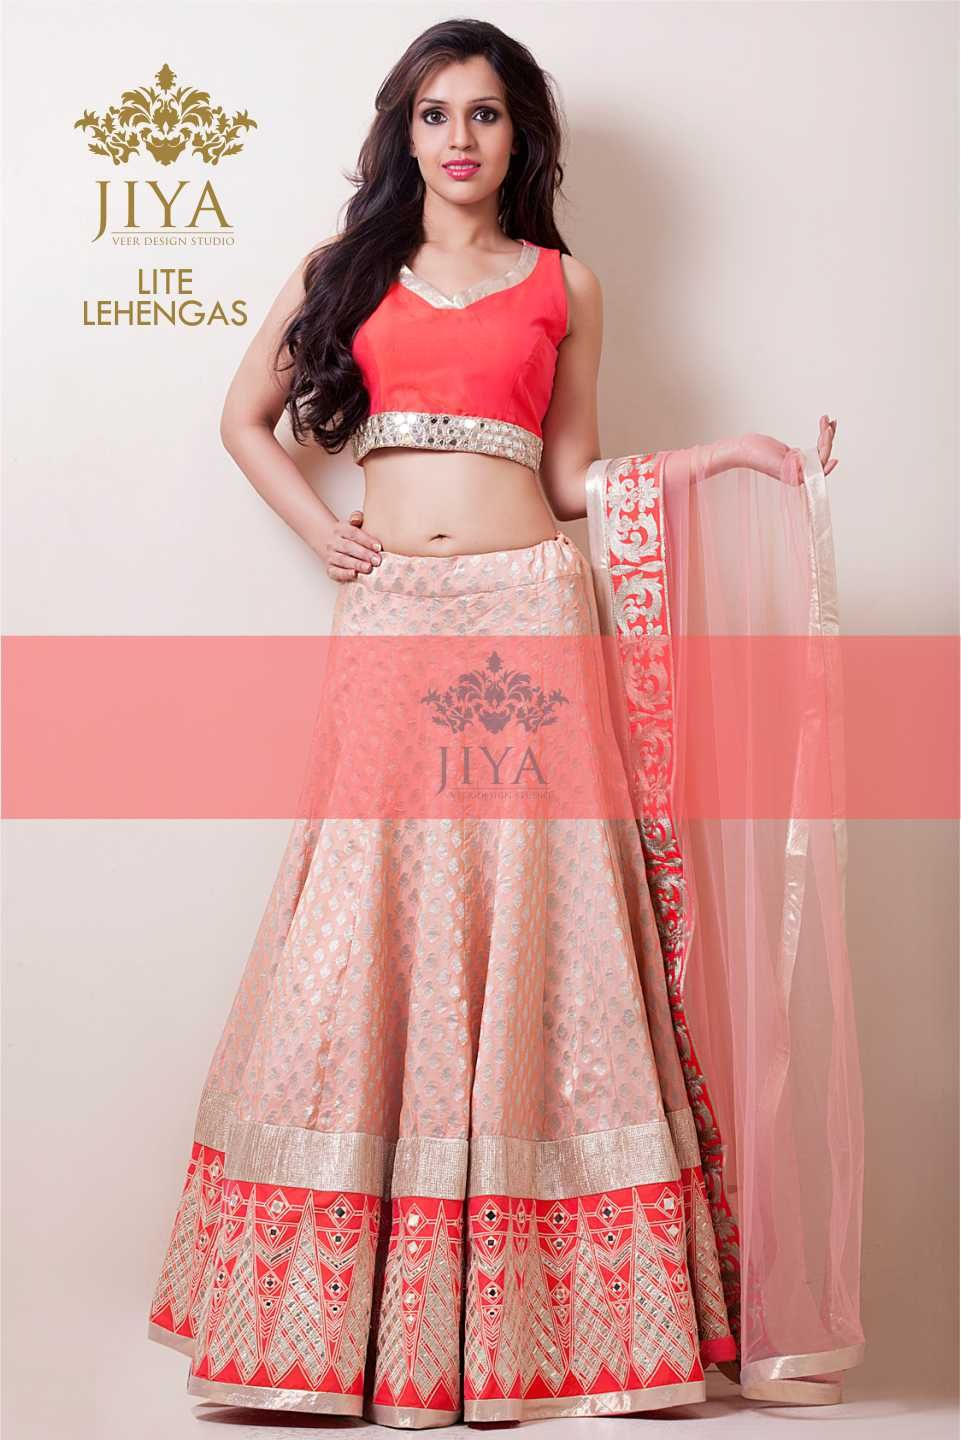 a7ae70edc88b A peach pink brocade lehenga with coral gotta patti border in indian motif.  Styled with a rawsilk coral blouse with a mirror border.